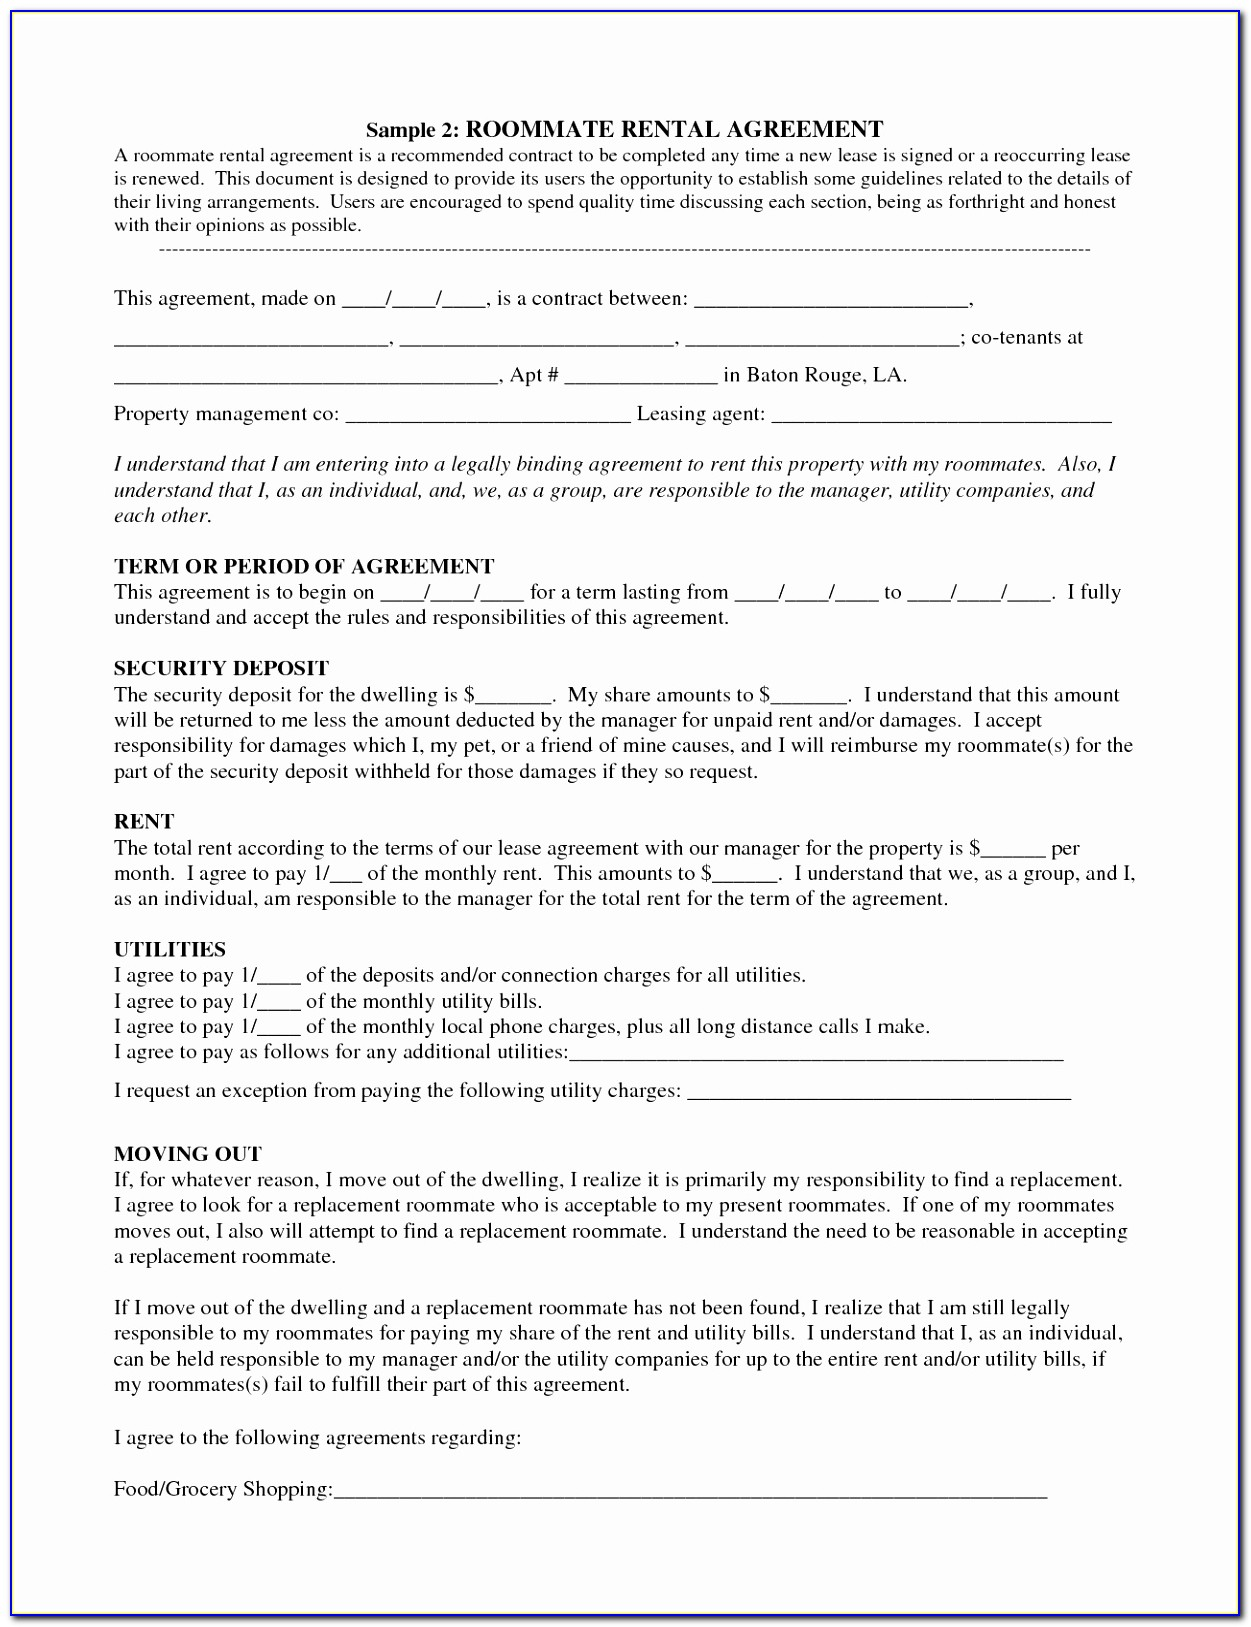 Simple Rental Agreement Form Free Download Template Examples Simple Room Rental Agreement Template Word Beautiful Doc Xls Letter Templates Uerrp